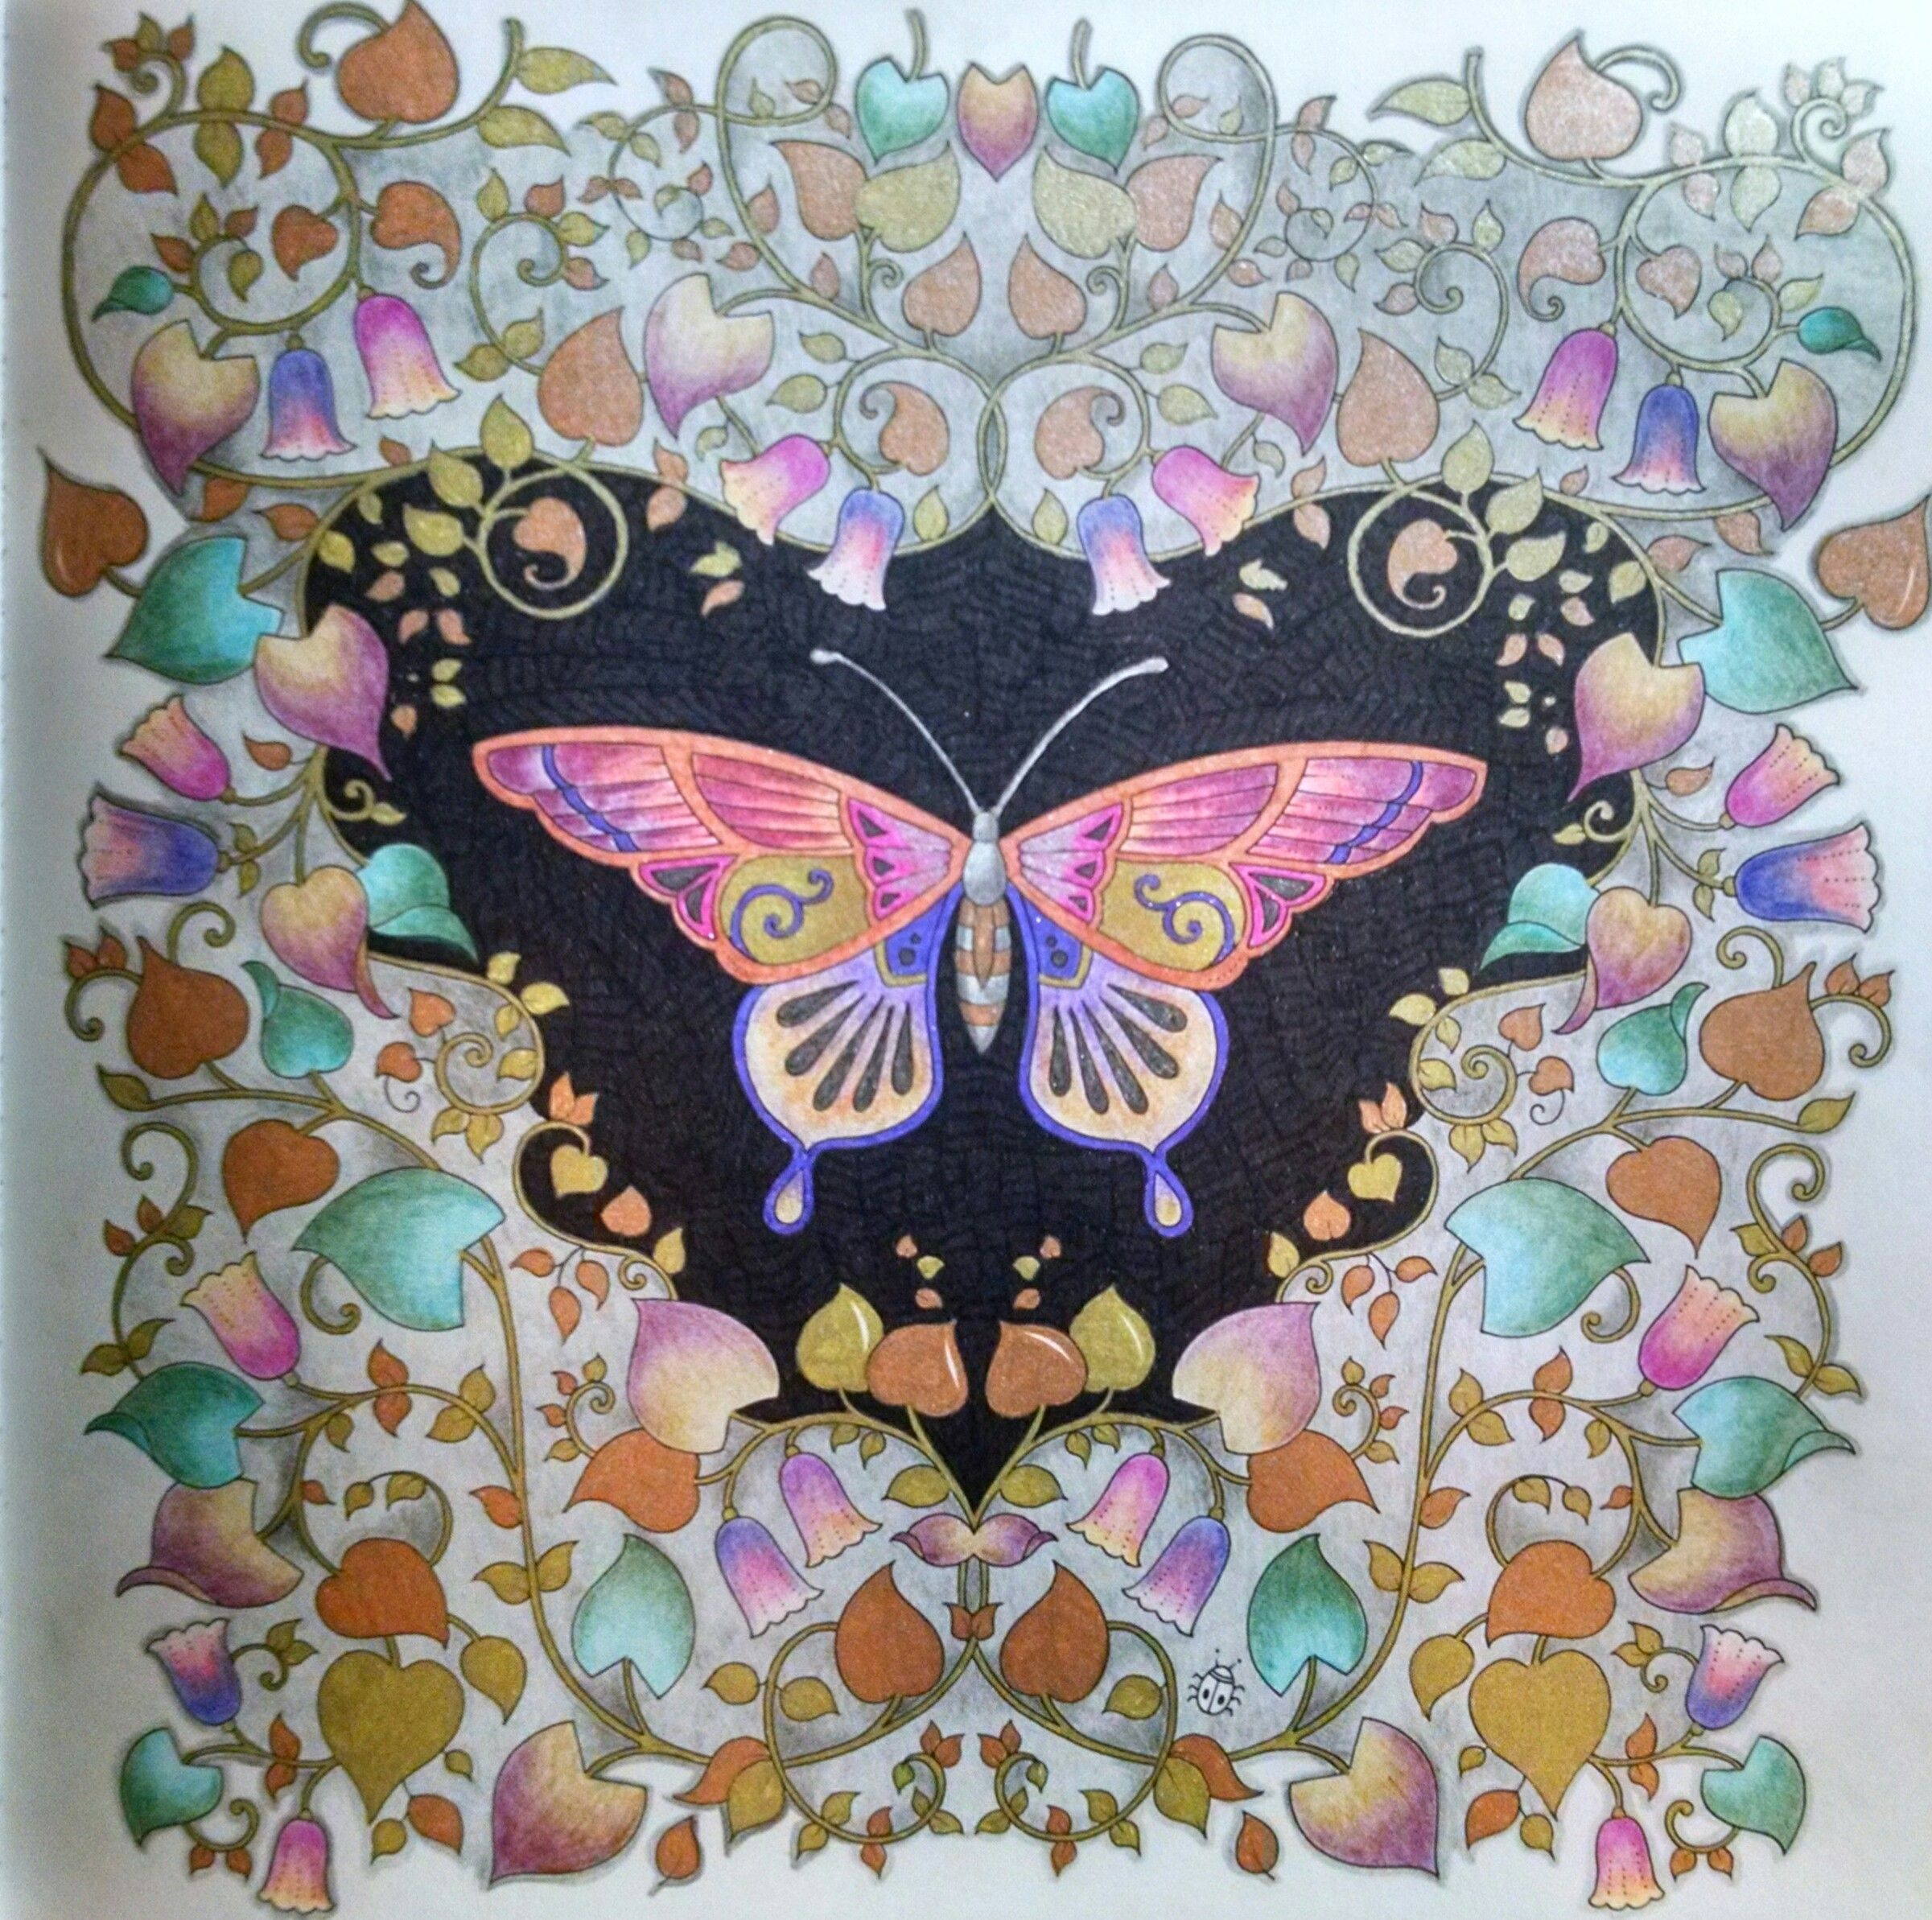 Magical Jungle Butterfly By Wendy Johanna Basford Coloring Basford Coloring Johanna Basford Coloring Book